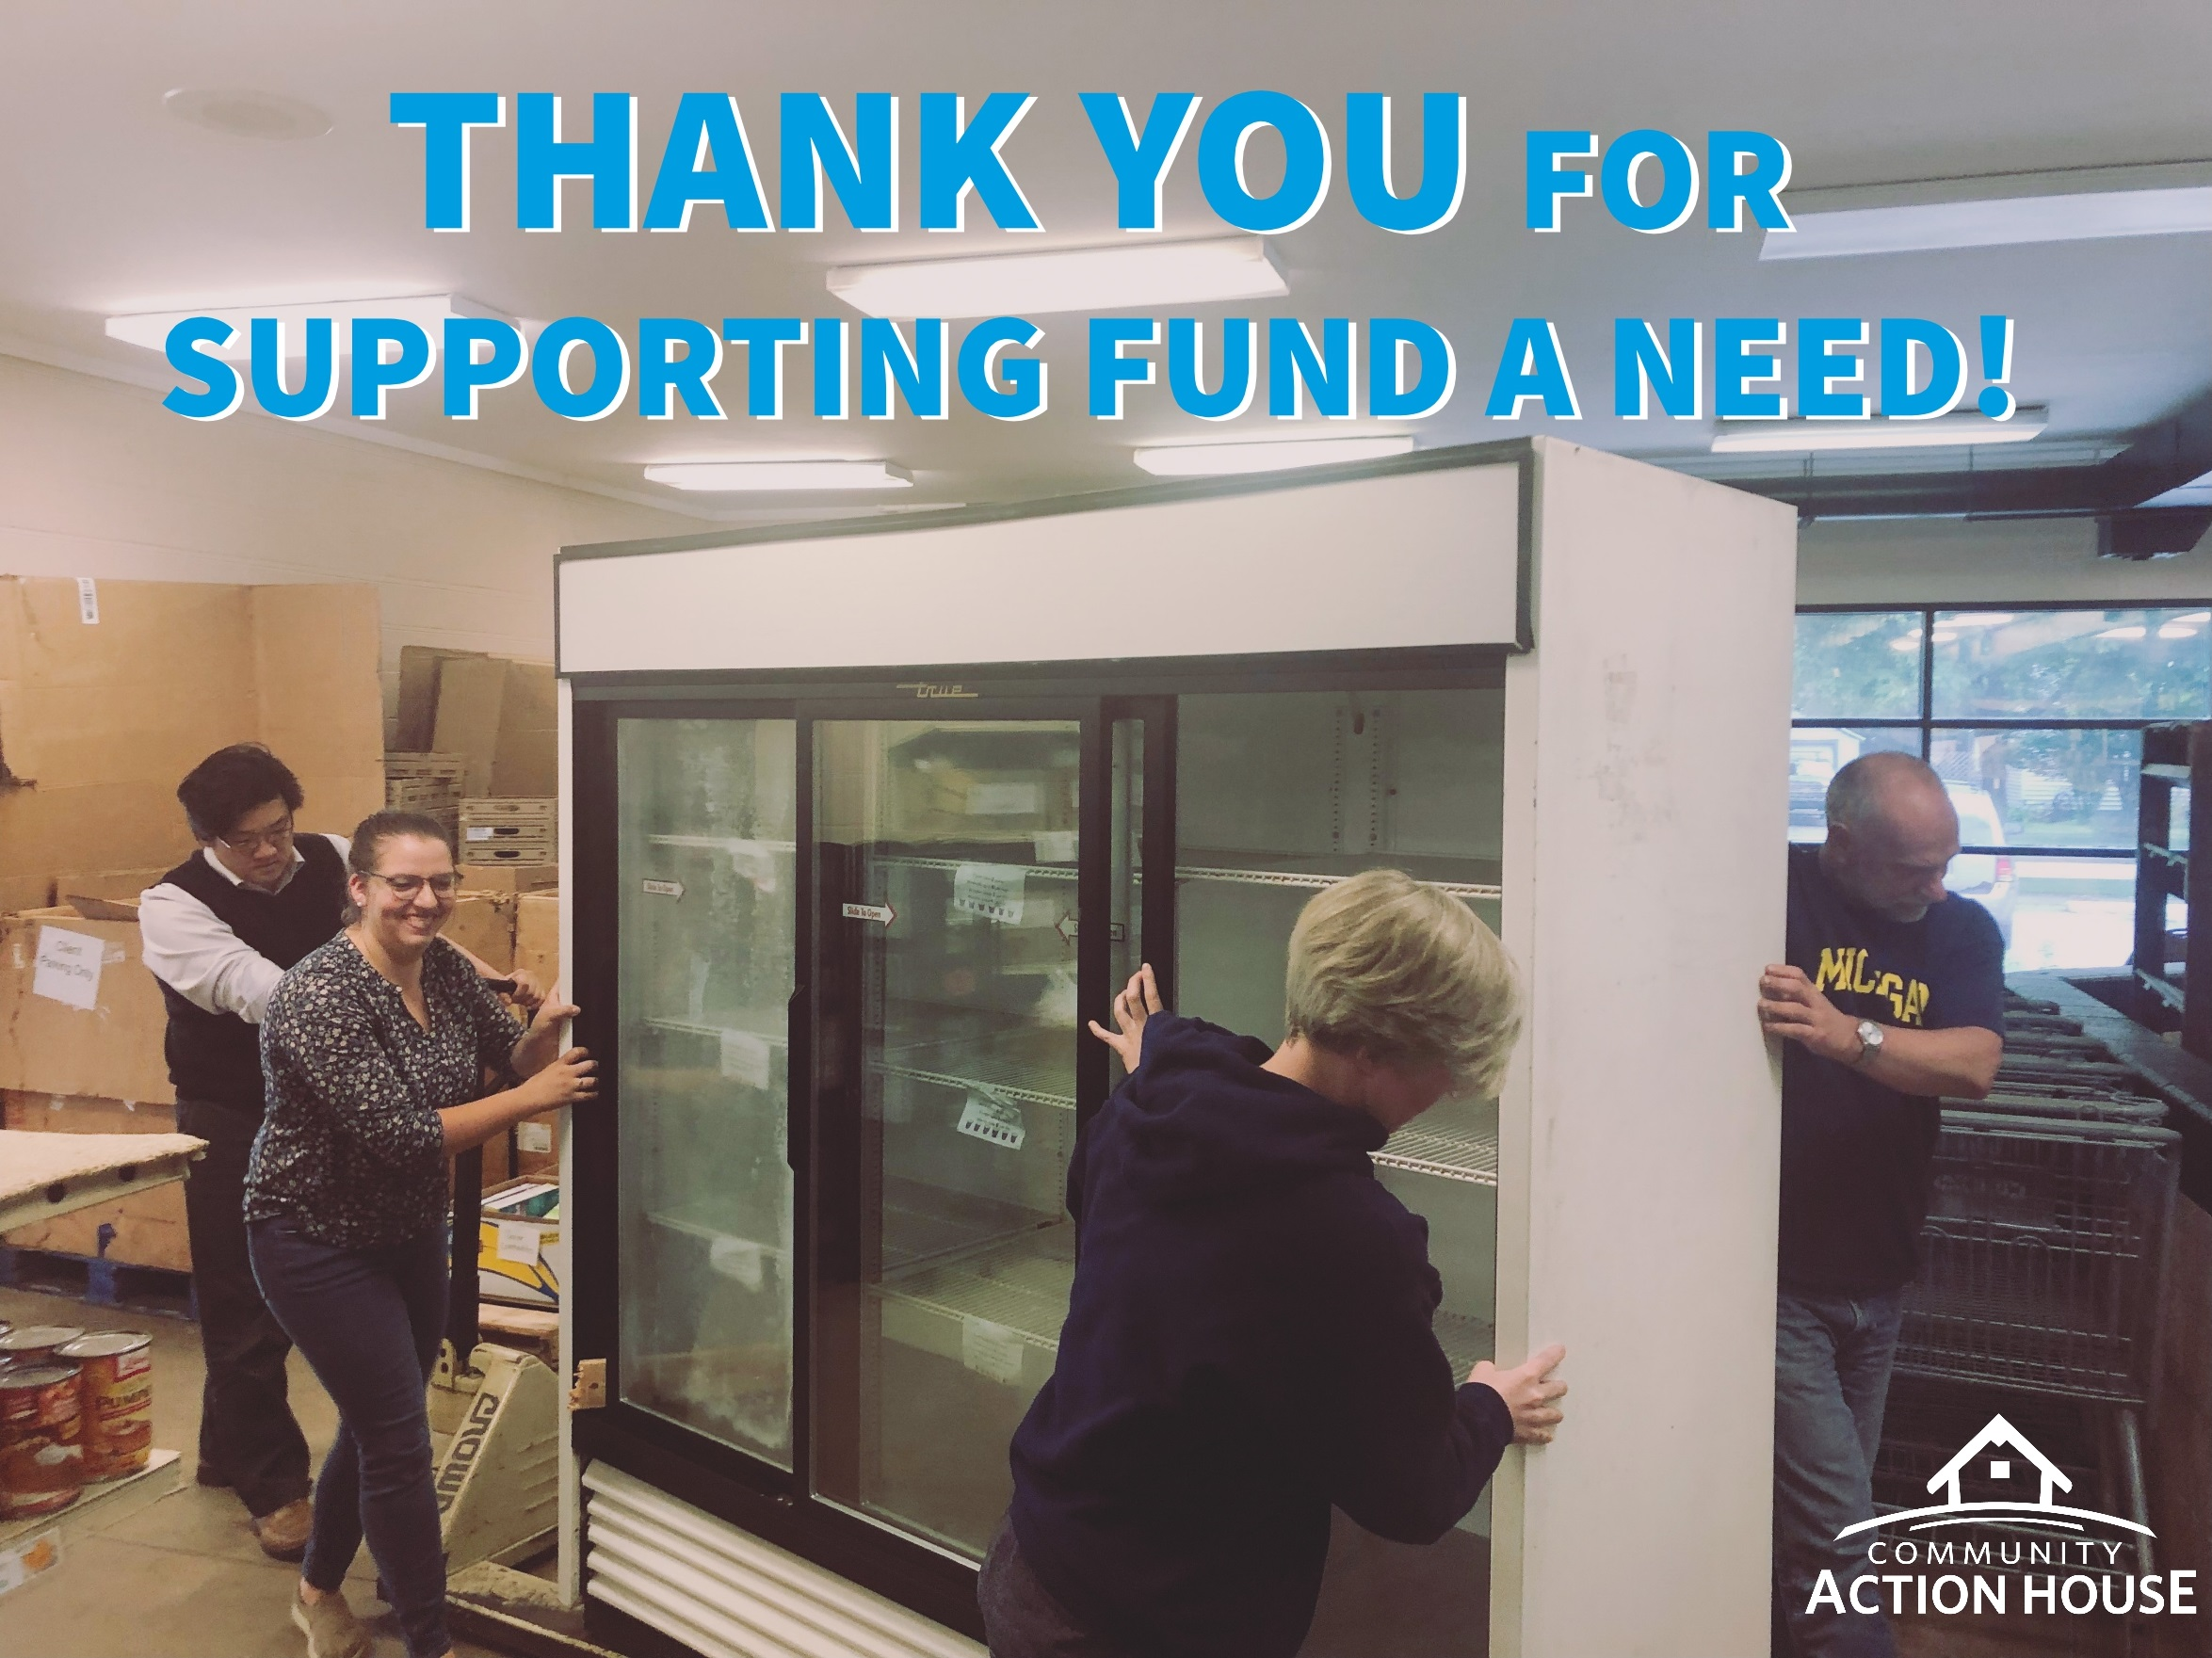 Grocery-style Coolers - Need is Fully Funded!